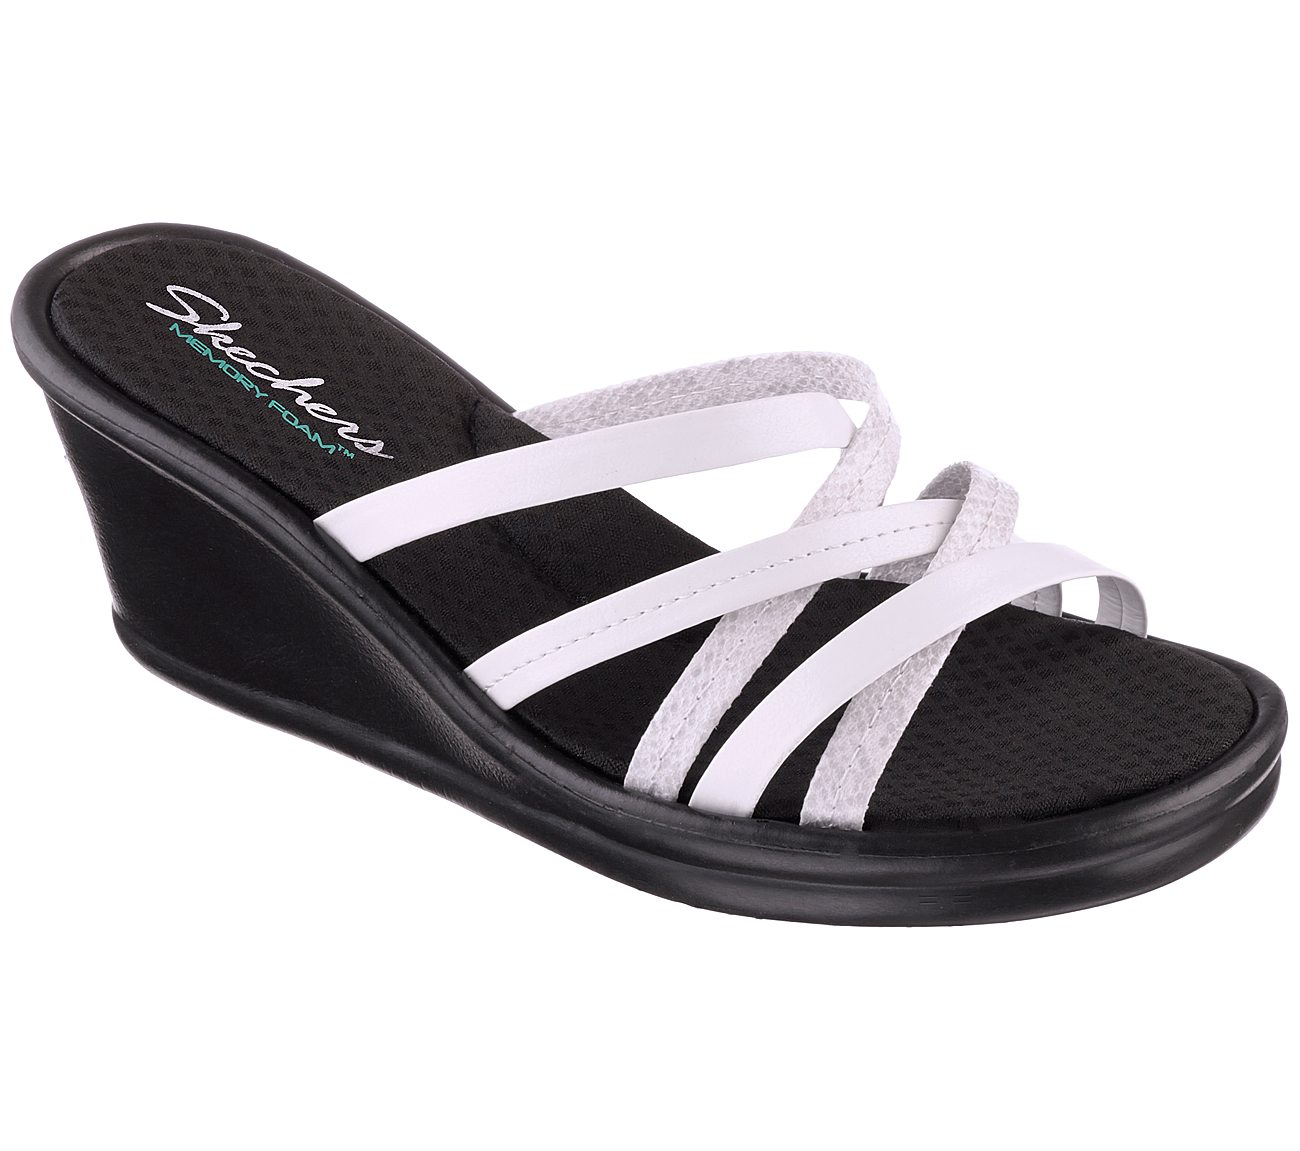 6515f2b16a16 Buy SKECHERS Rumblers - Social Butterfly Cali Shoes only  48.00